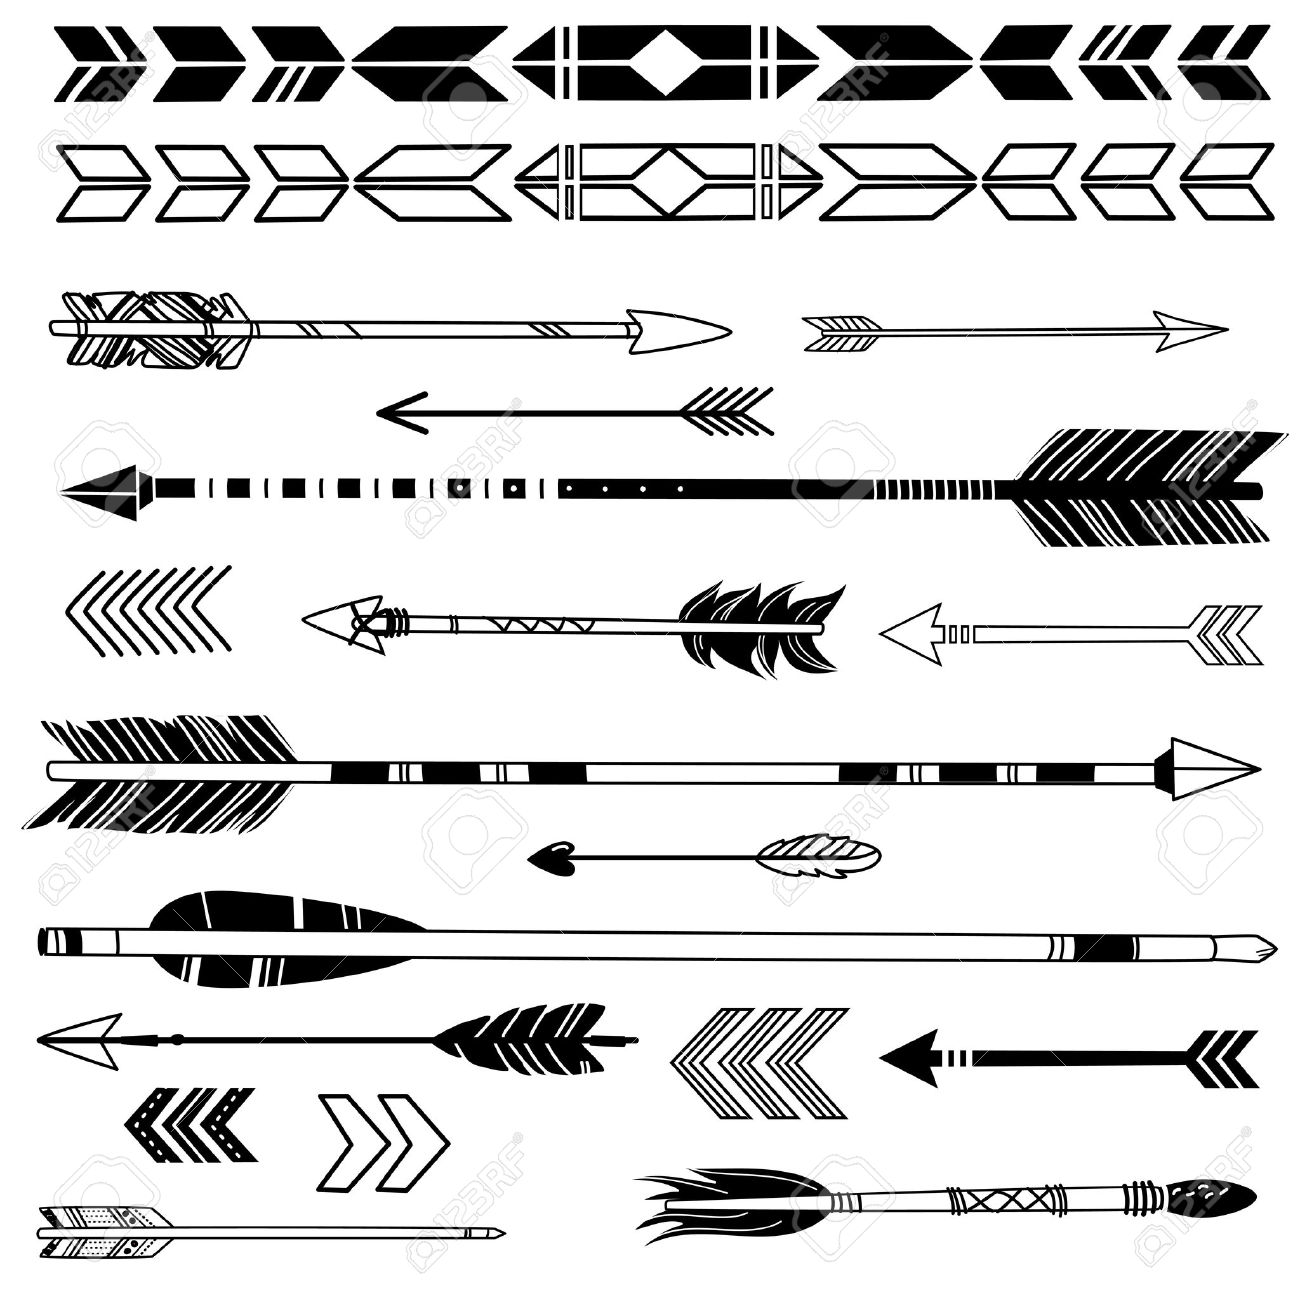 Traditional arrow clipart svg transparent library Traditional arrow clipart - ClipartFest svg transparent library